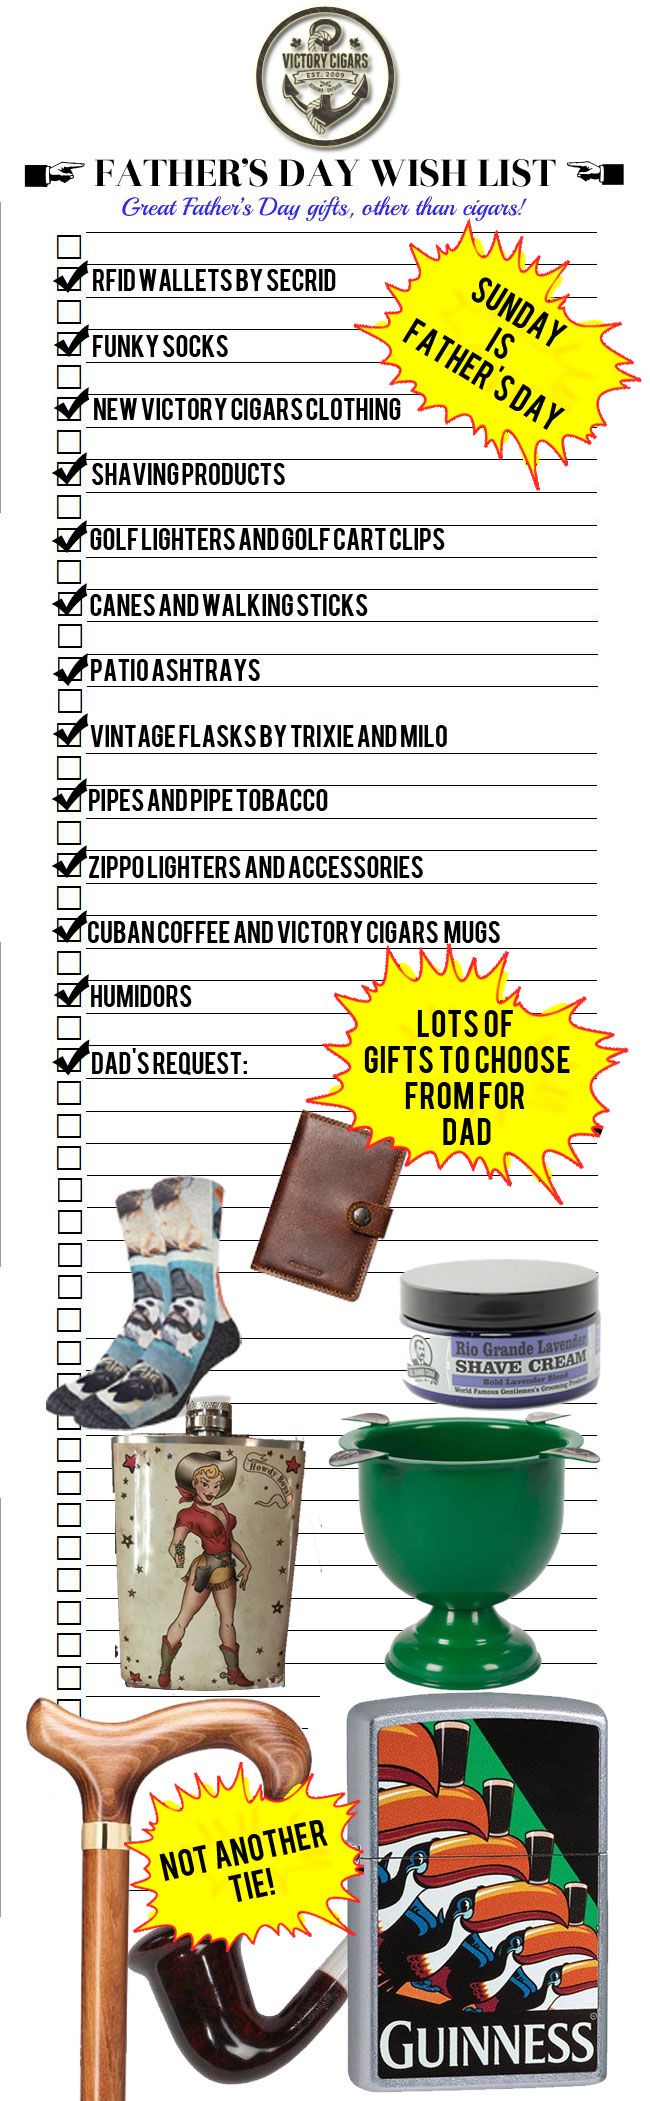 Fathers Day Wish List